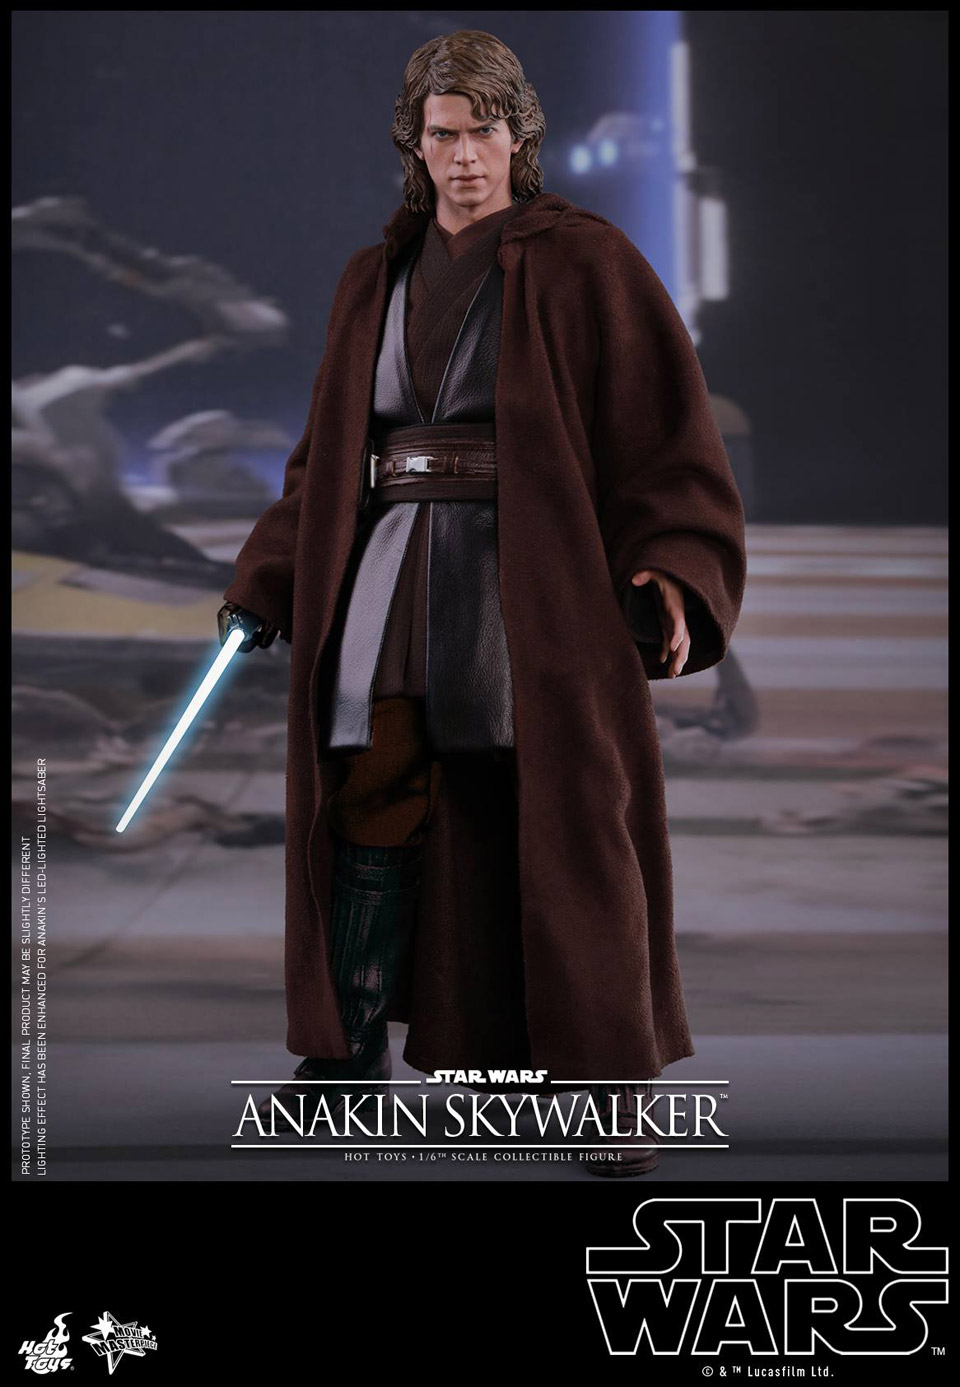 Hot Toys Star Wars Ep. III Anakin Skywalker 1/6 Scale Action Figure